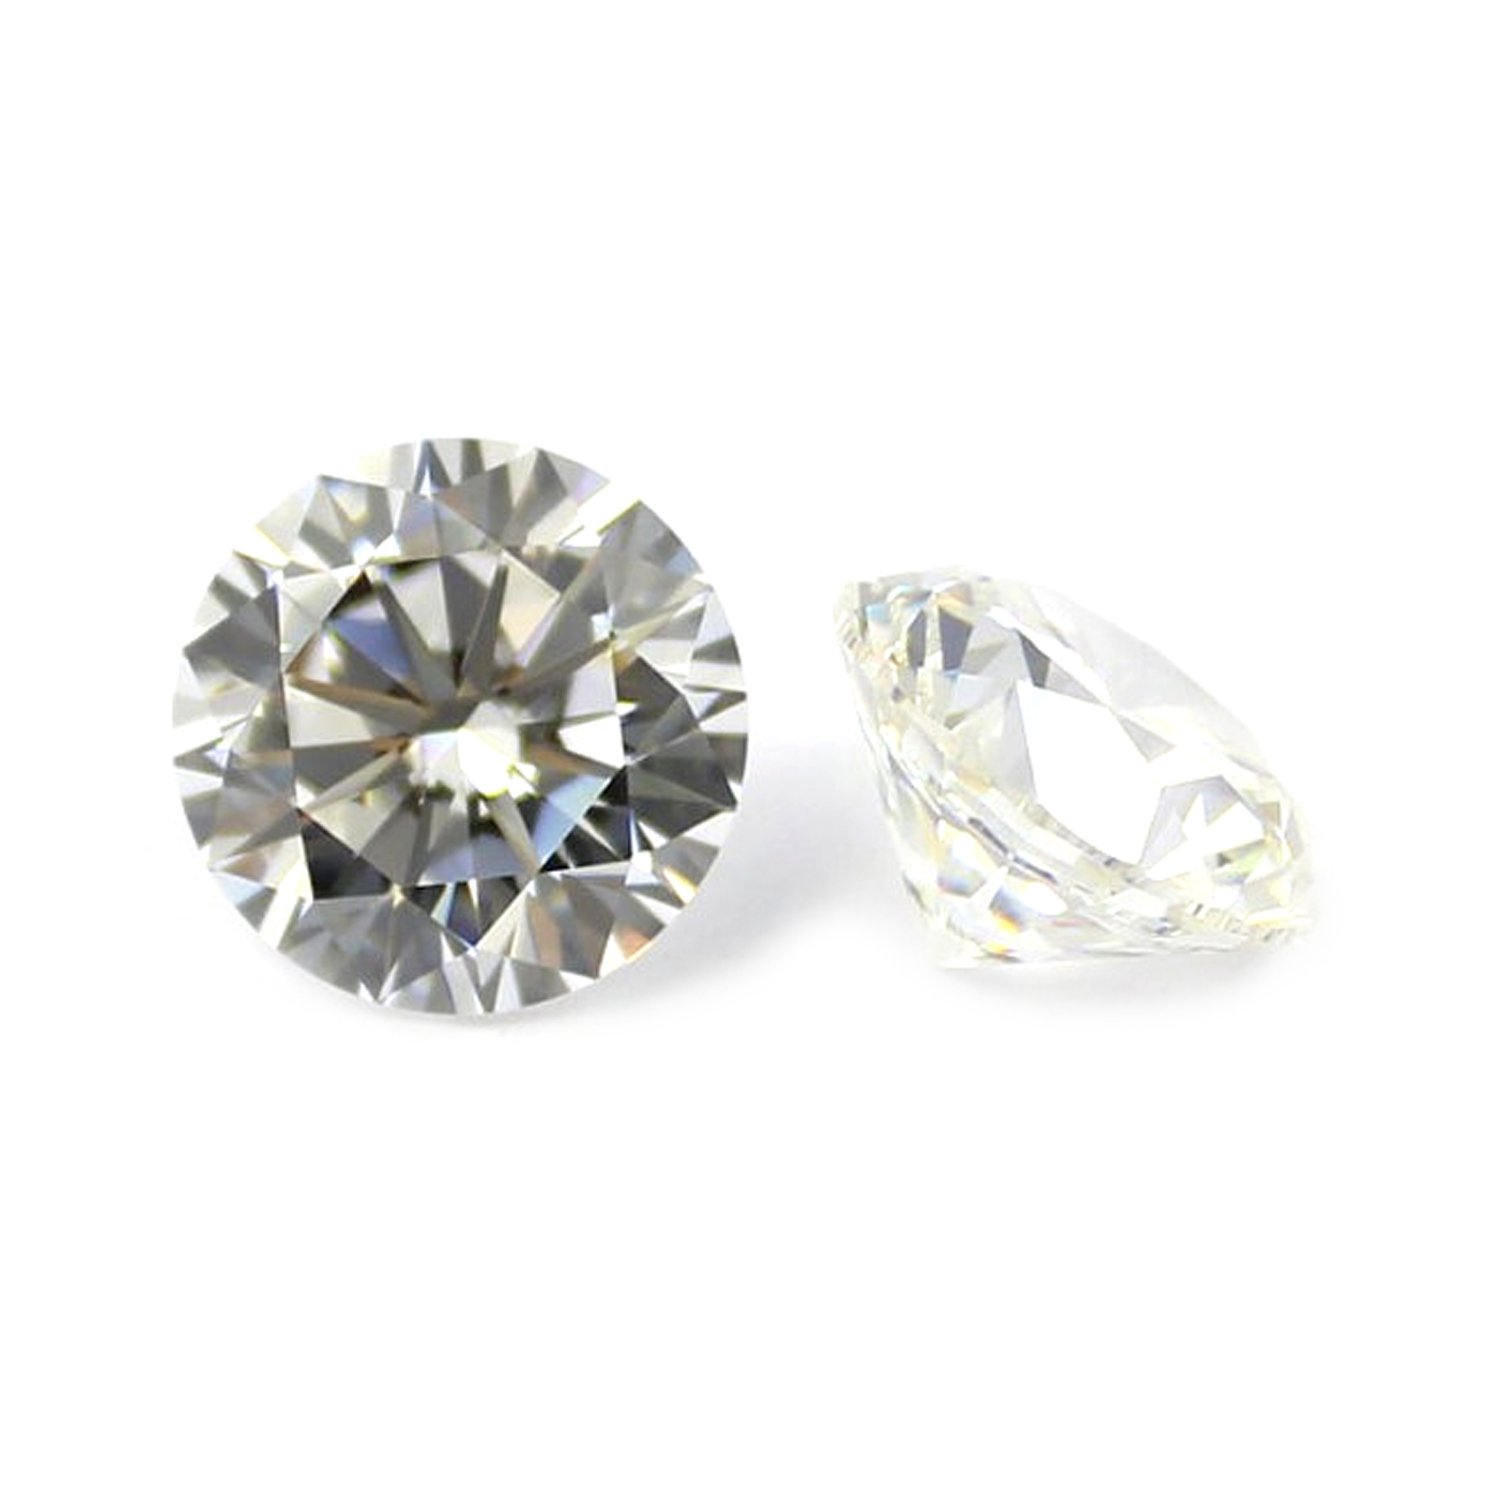 2.25 MM ROUND CUT WHITE ZIRCON ALL NATURAL AAA 3 PC SET